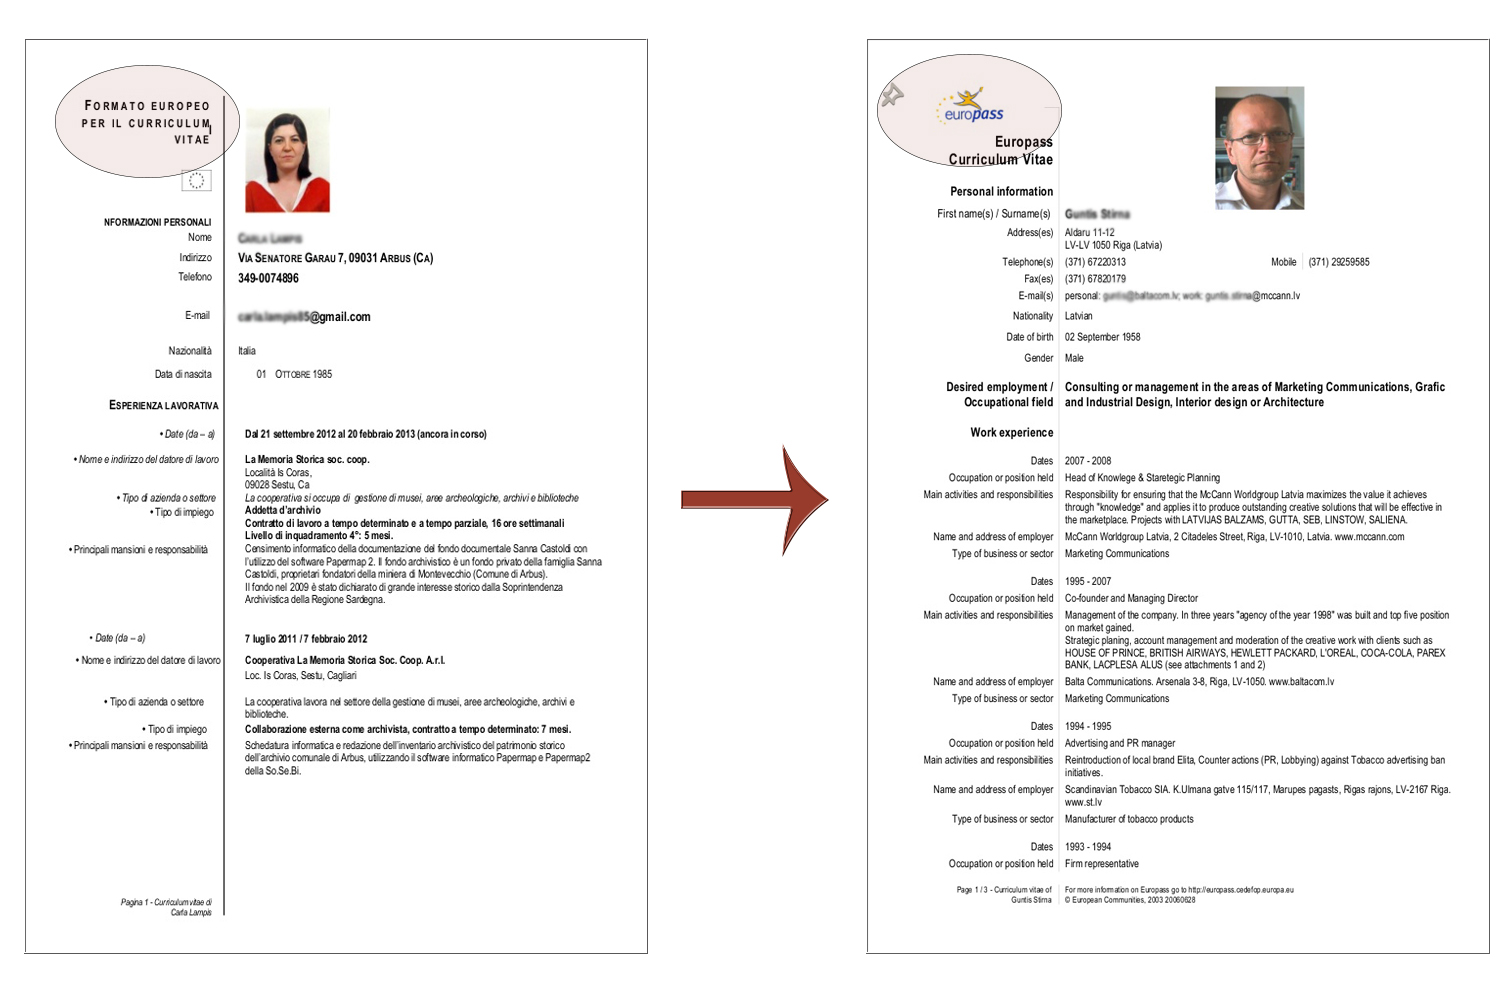 differenze tra curriculum vitae europeo e europass